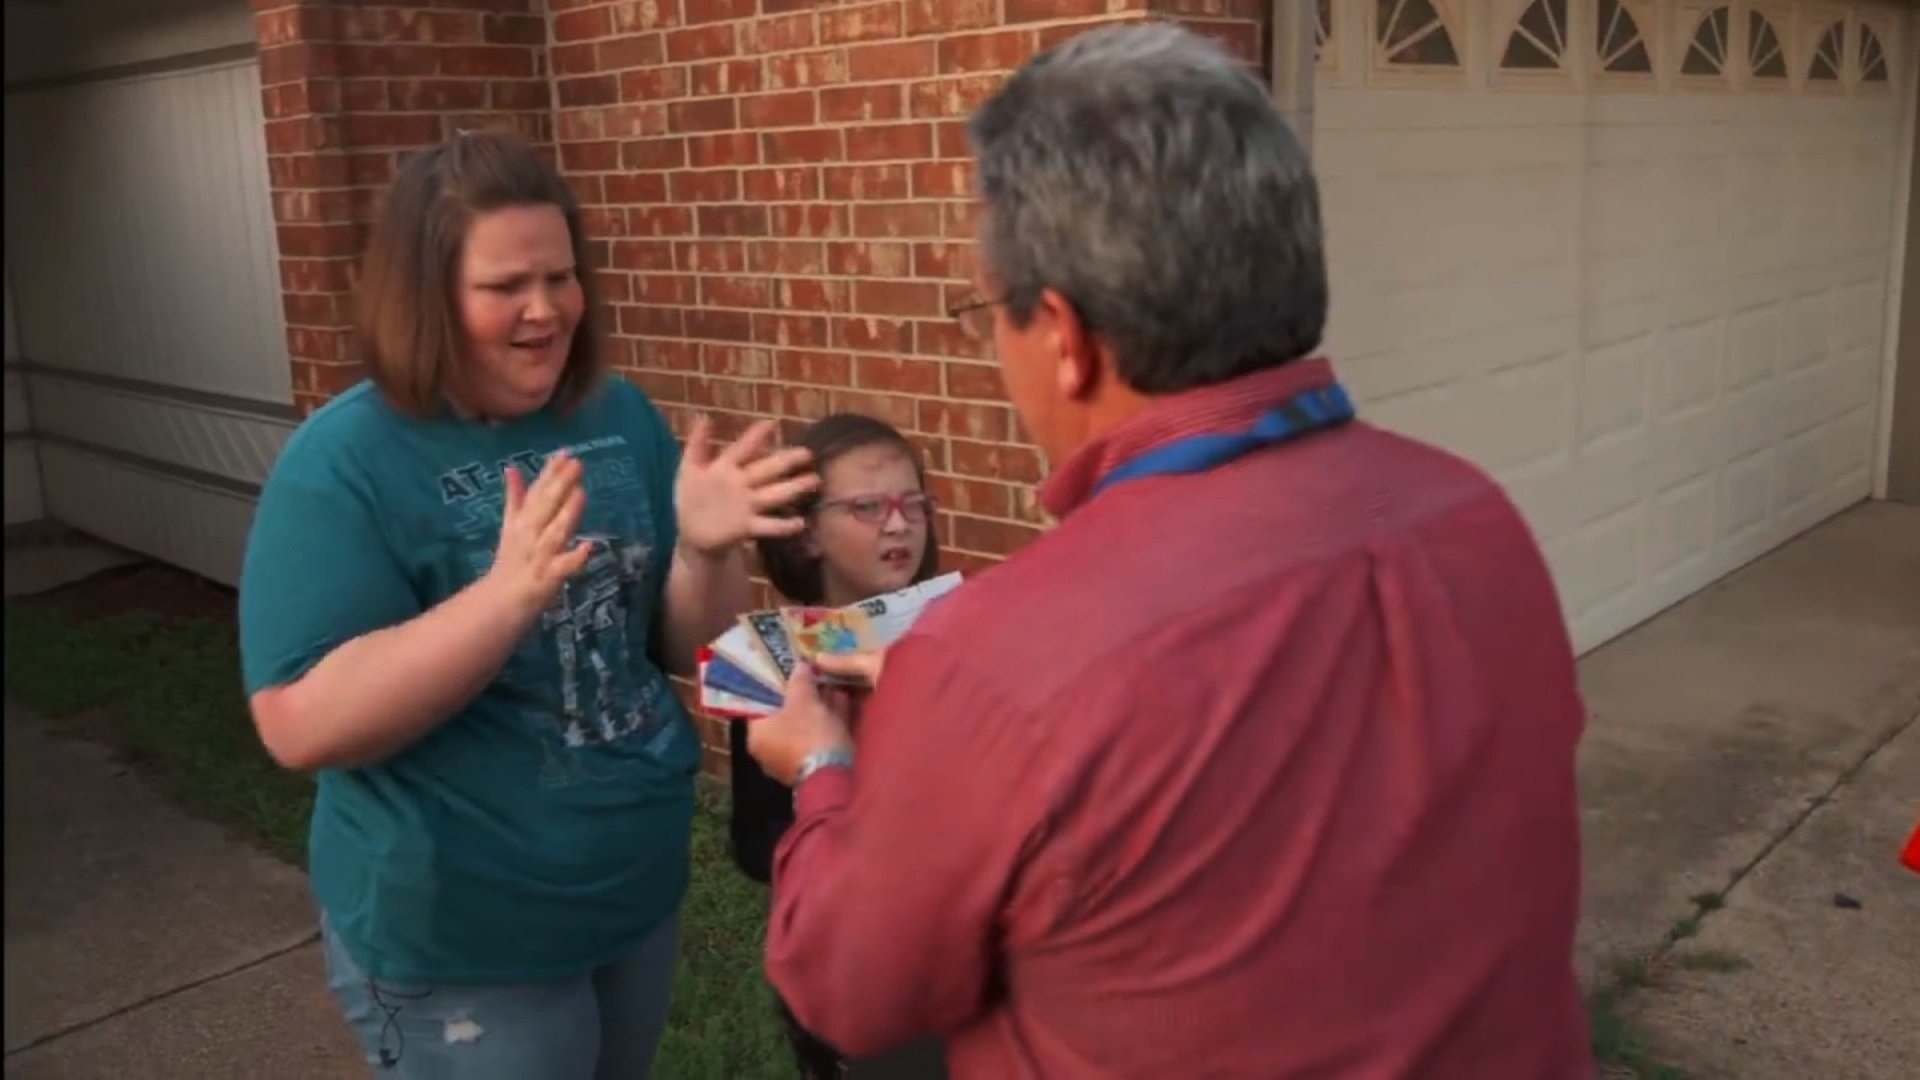 Kohl's awarded Candace Payne and her family with more Chewbacca masks and gift cards to show their appreciation of her viral video. (Photo: CNN)